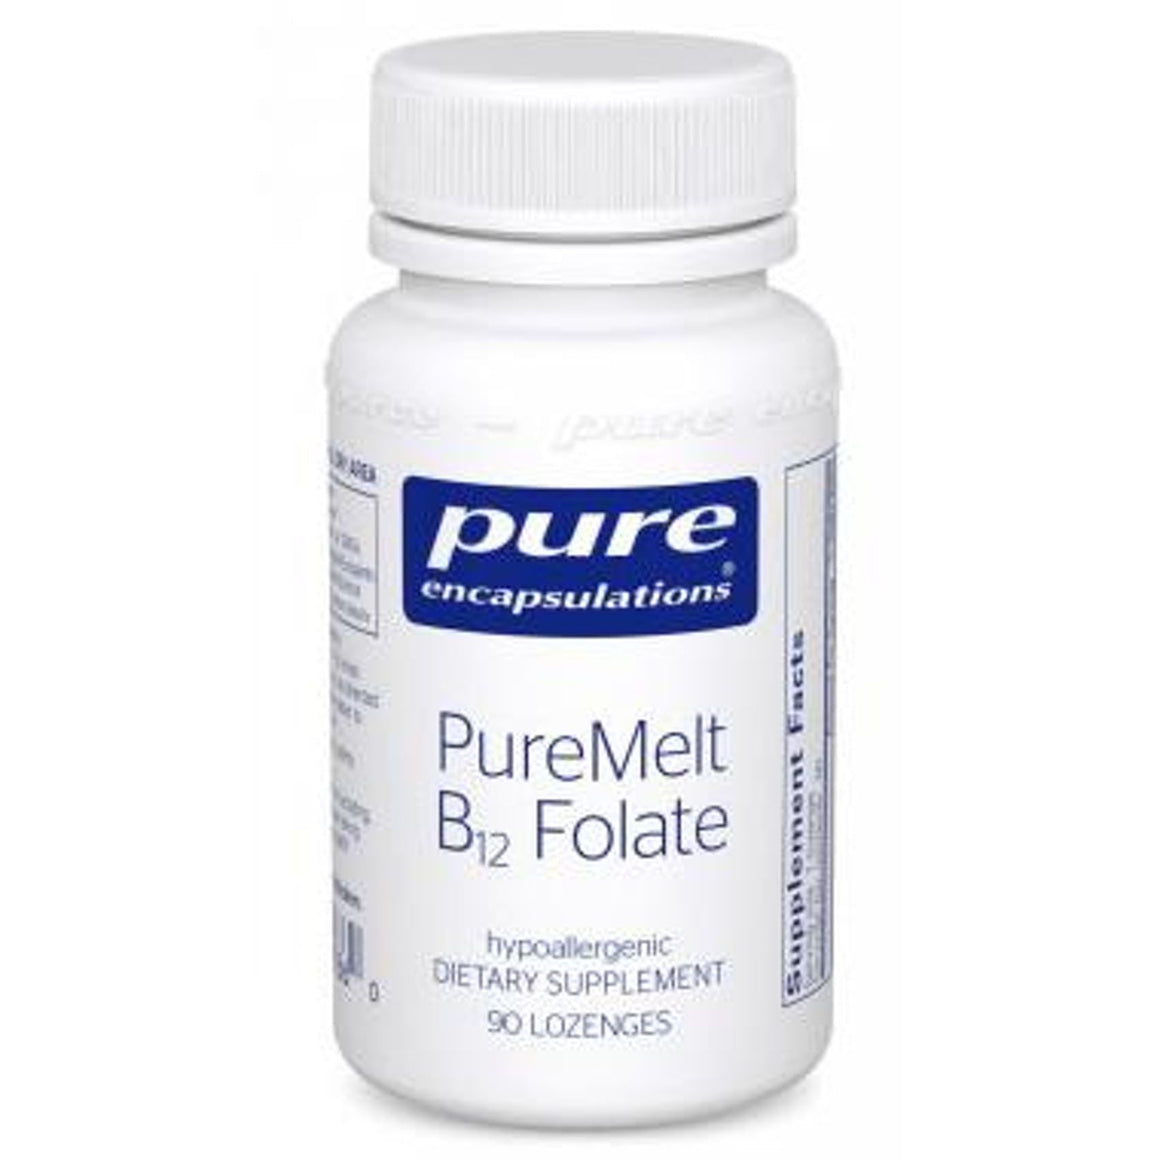 A bottle of Pure PureMelt B12 Folate